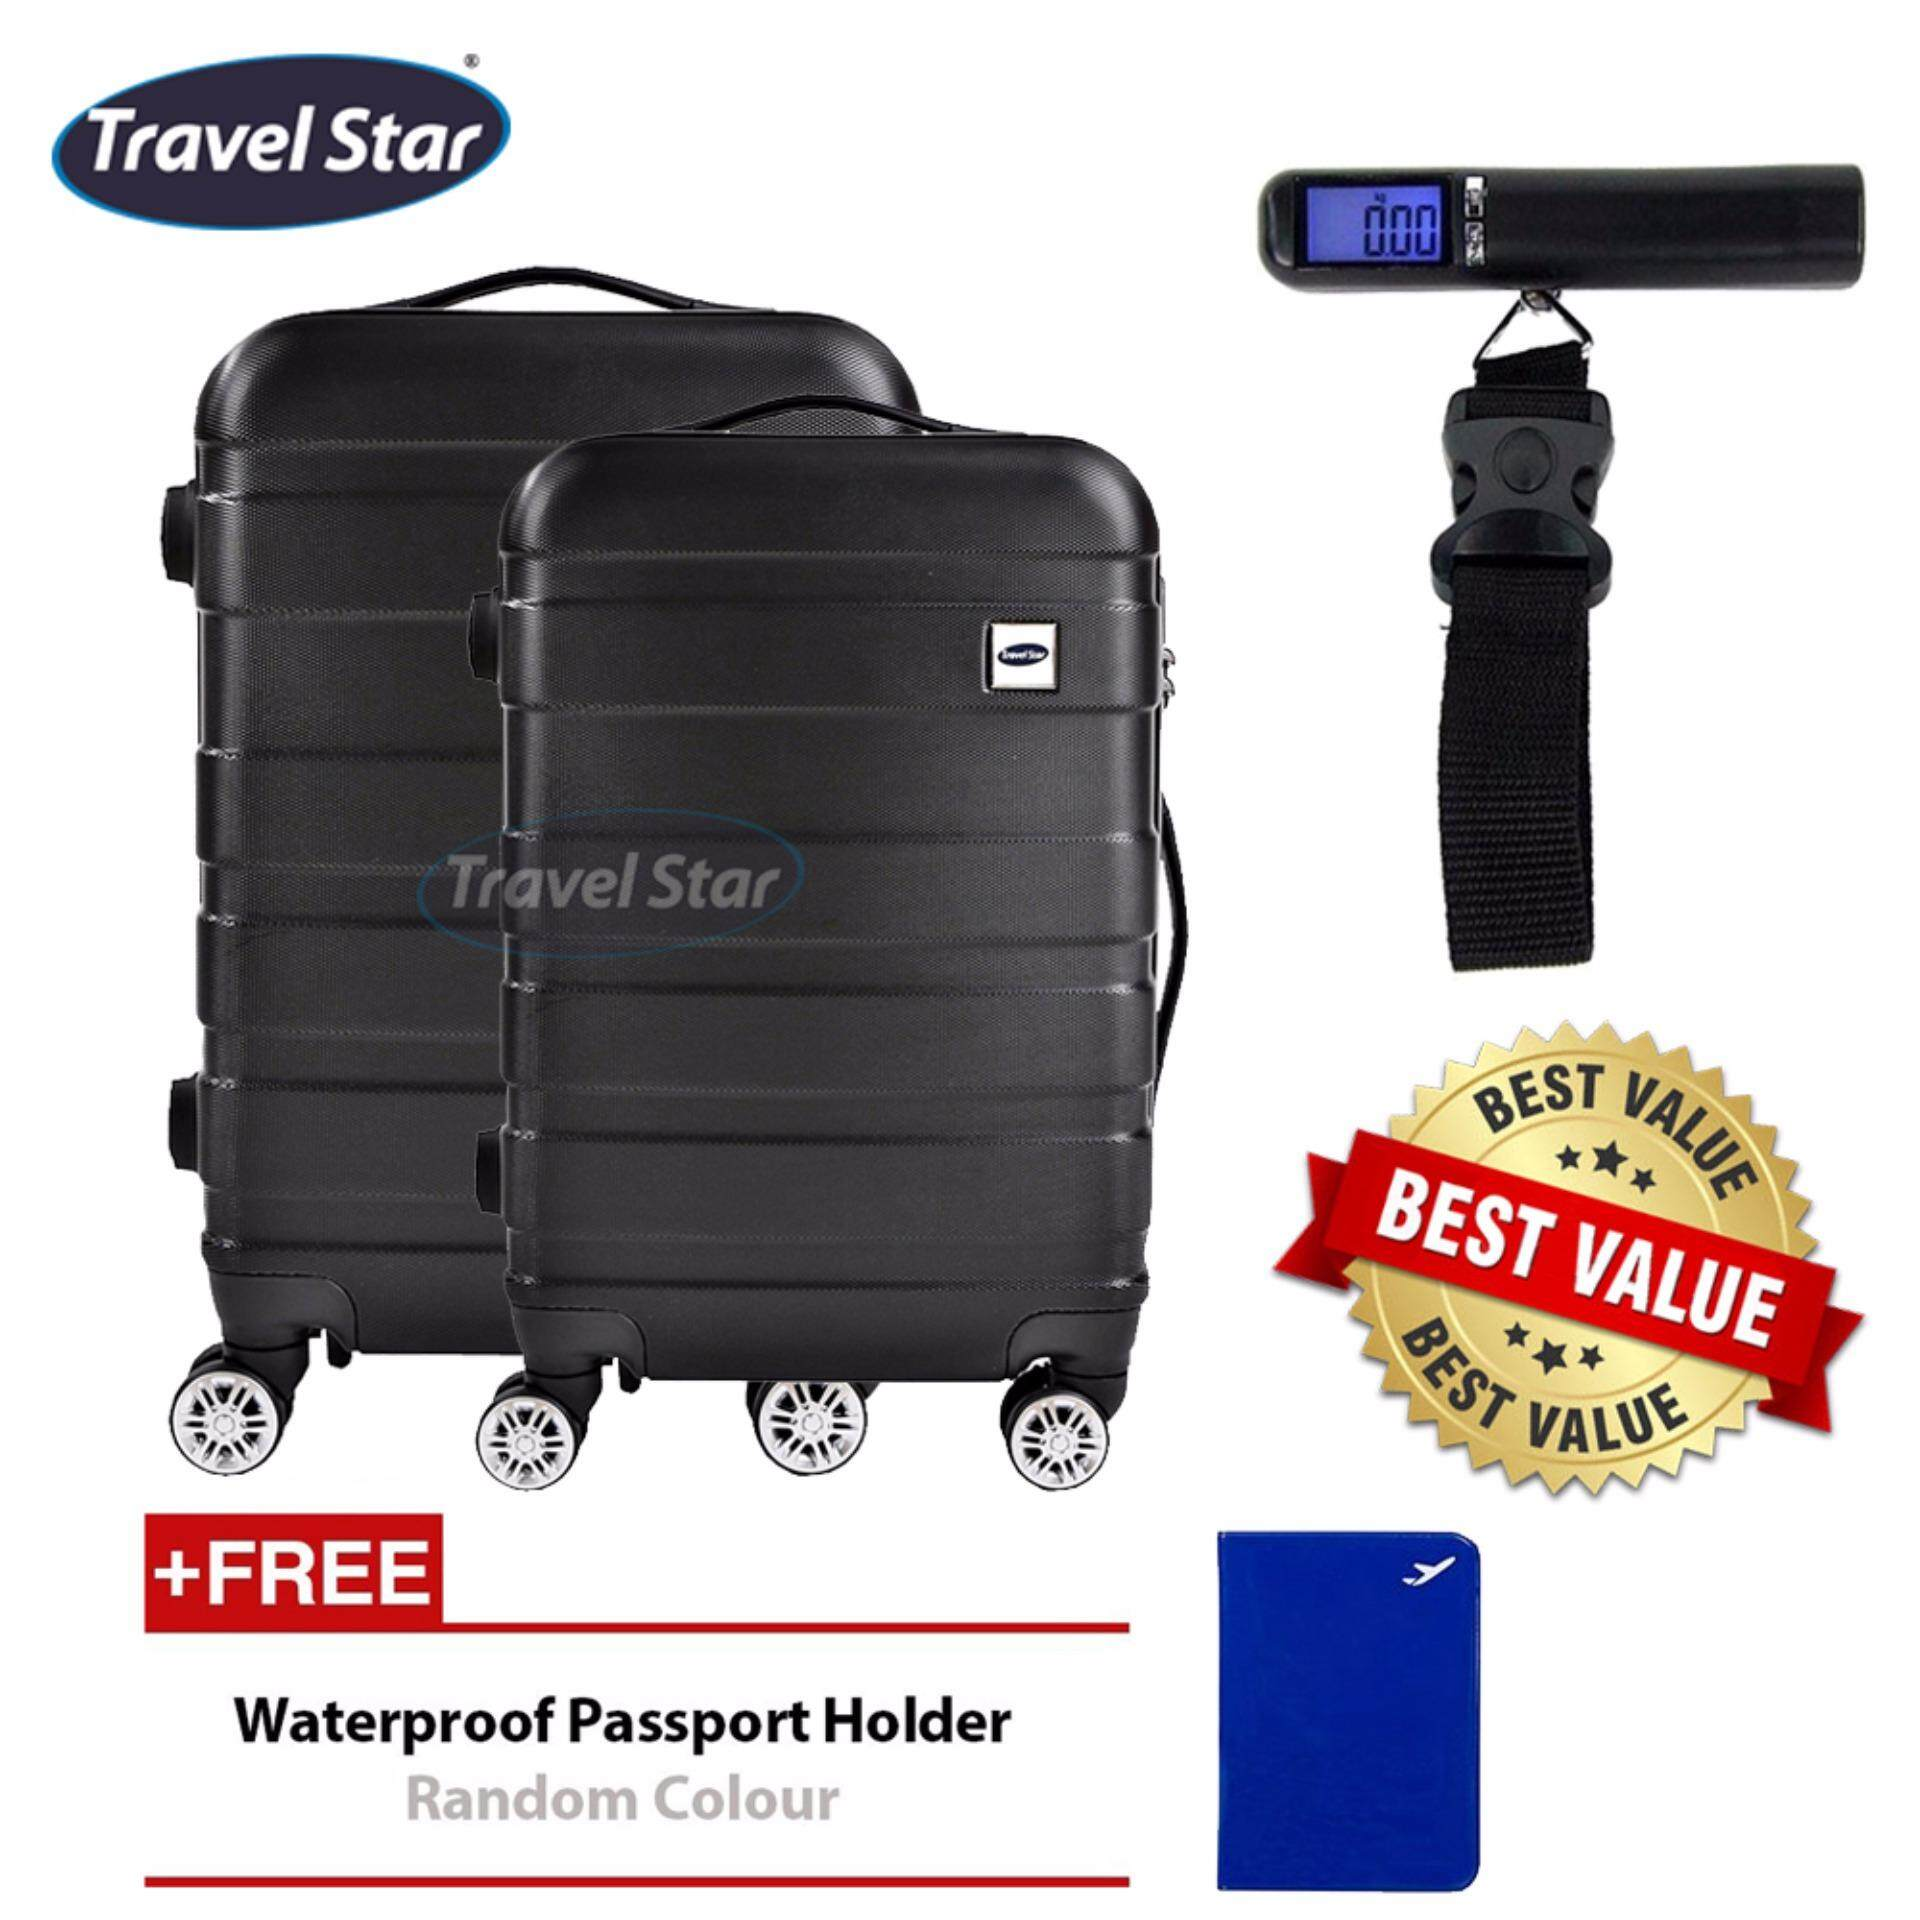 Bundle : Travel Star 238 Premium Design Hard Case Luggage Bagasi Set 20+24 inches - Black + Portable Digital Luggage Scale with LCD Display